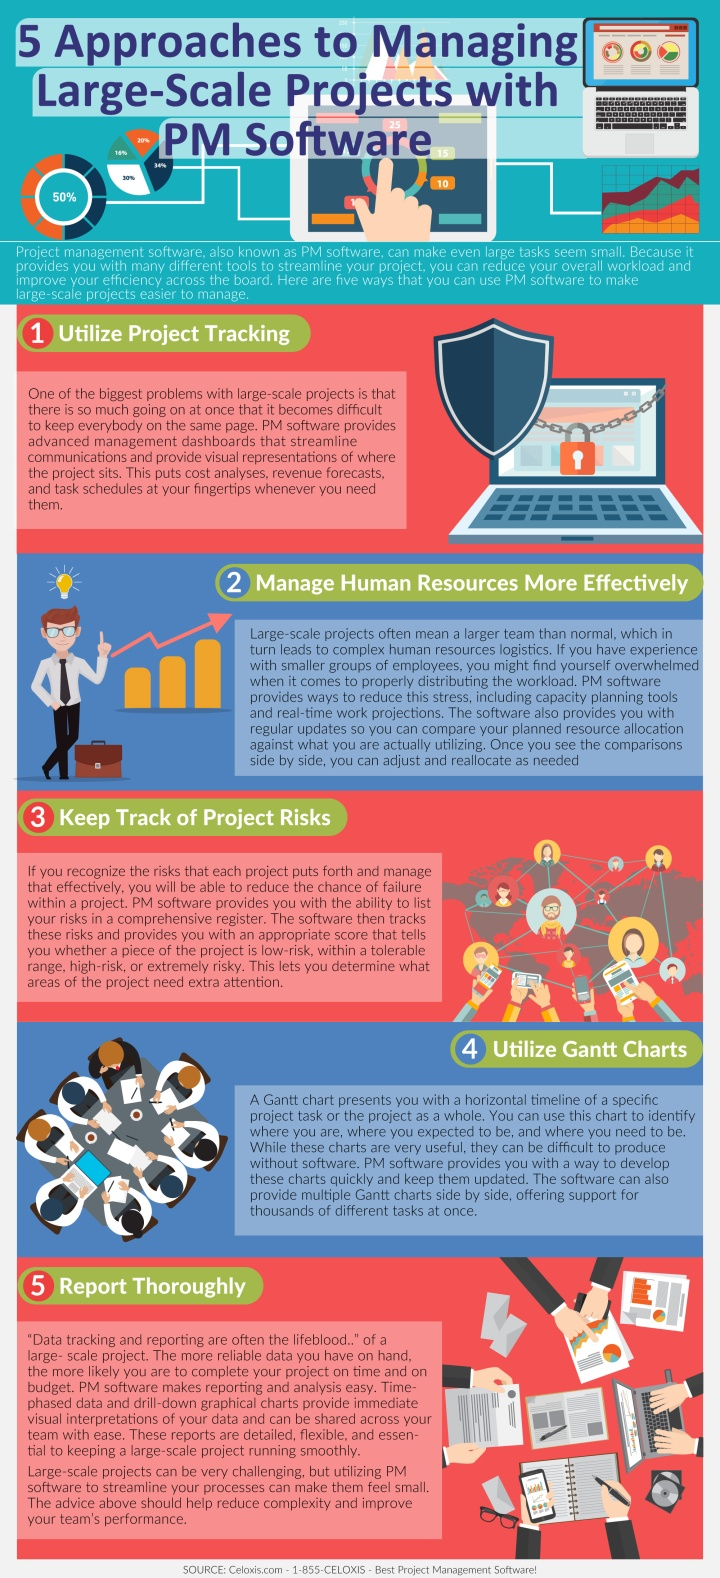 INFOGRAPHIC: 5 Approaches to Managing Large-Scale Projects with PM Software